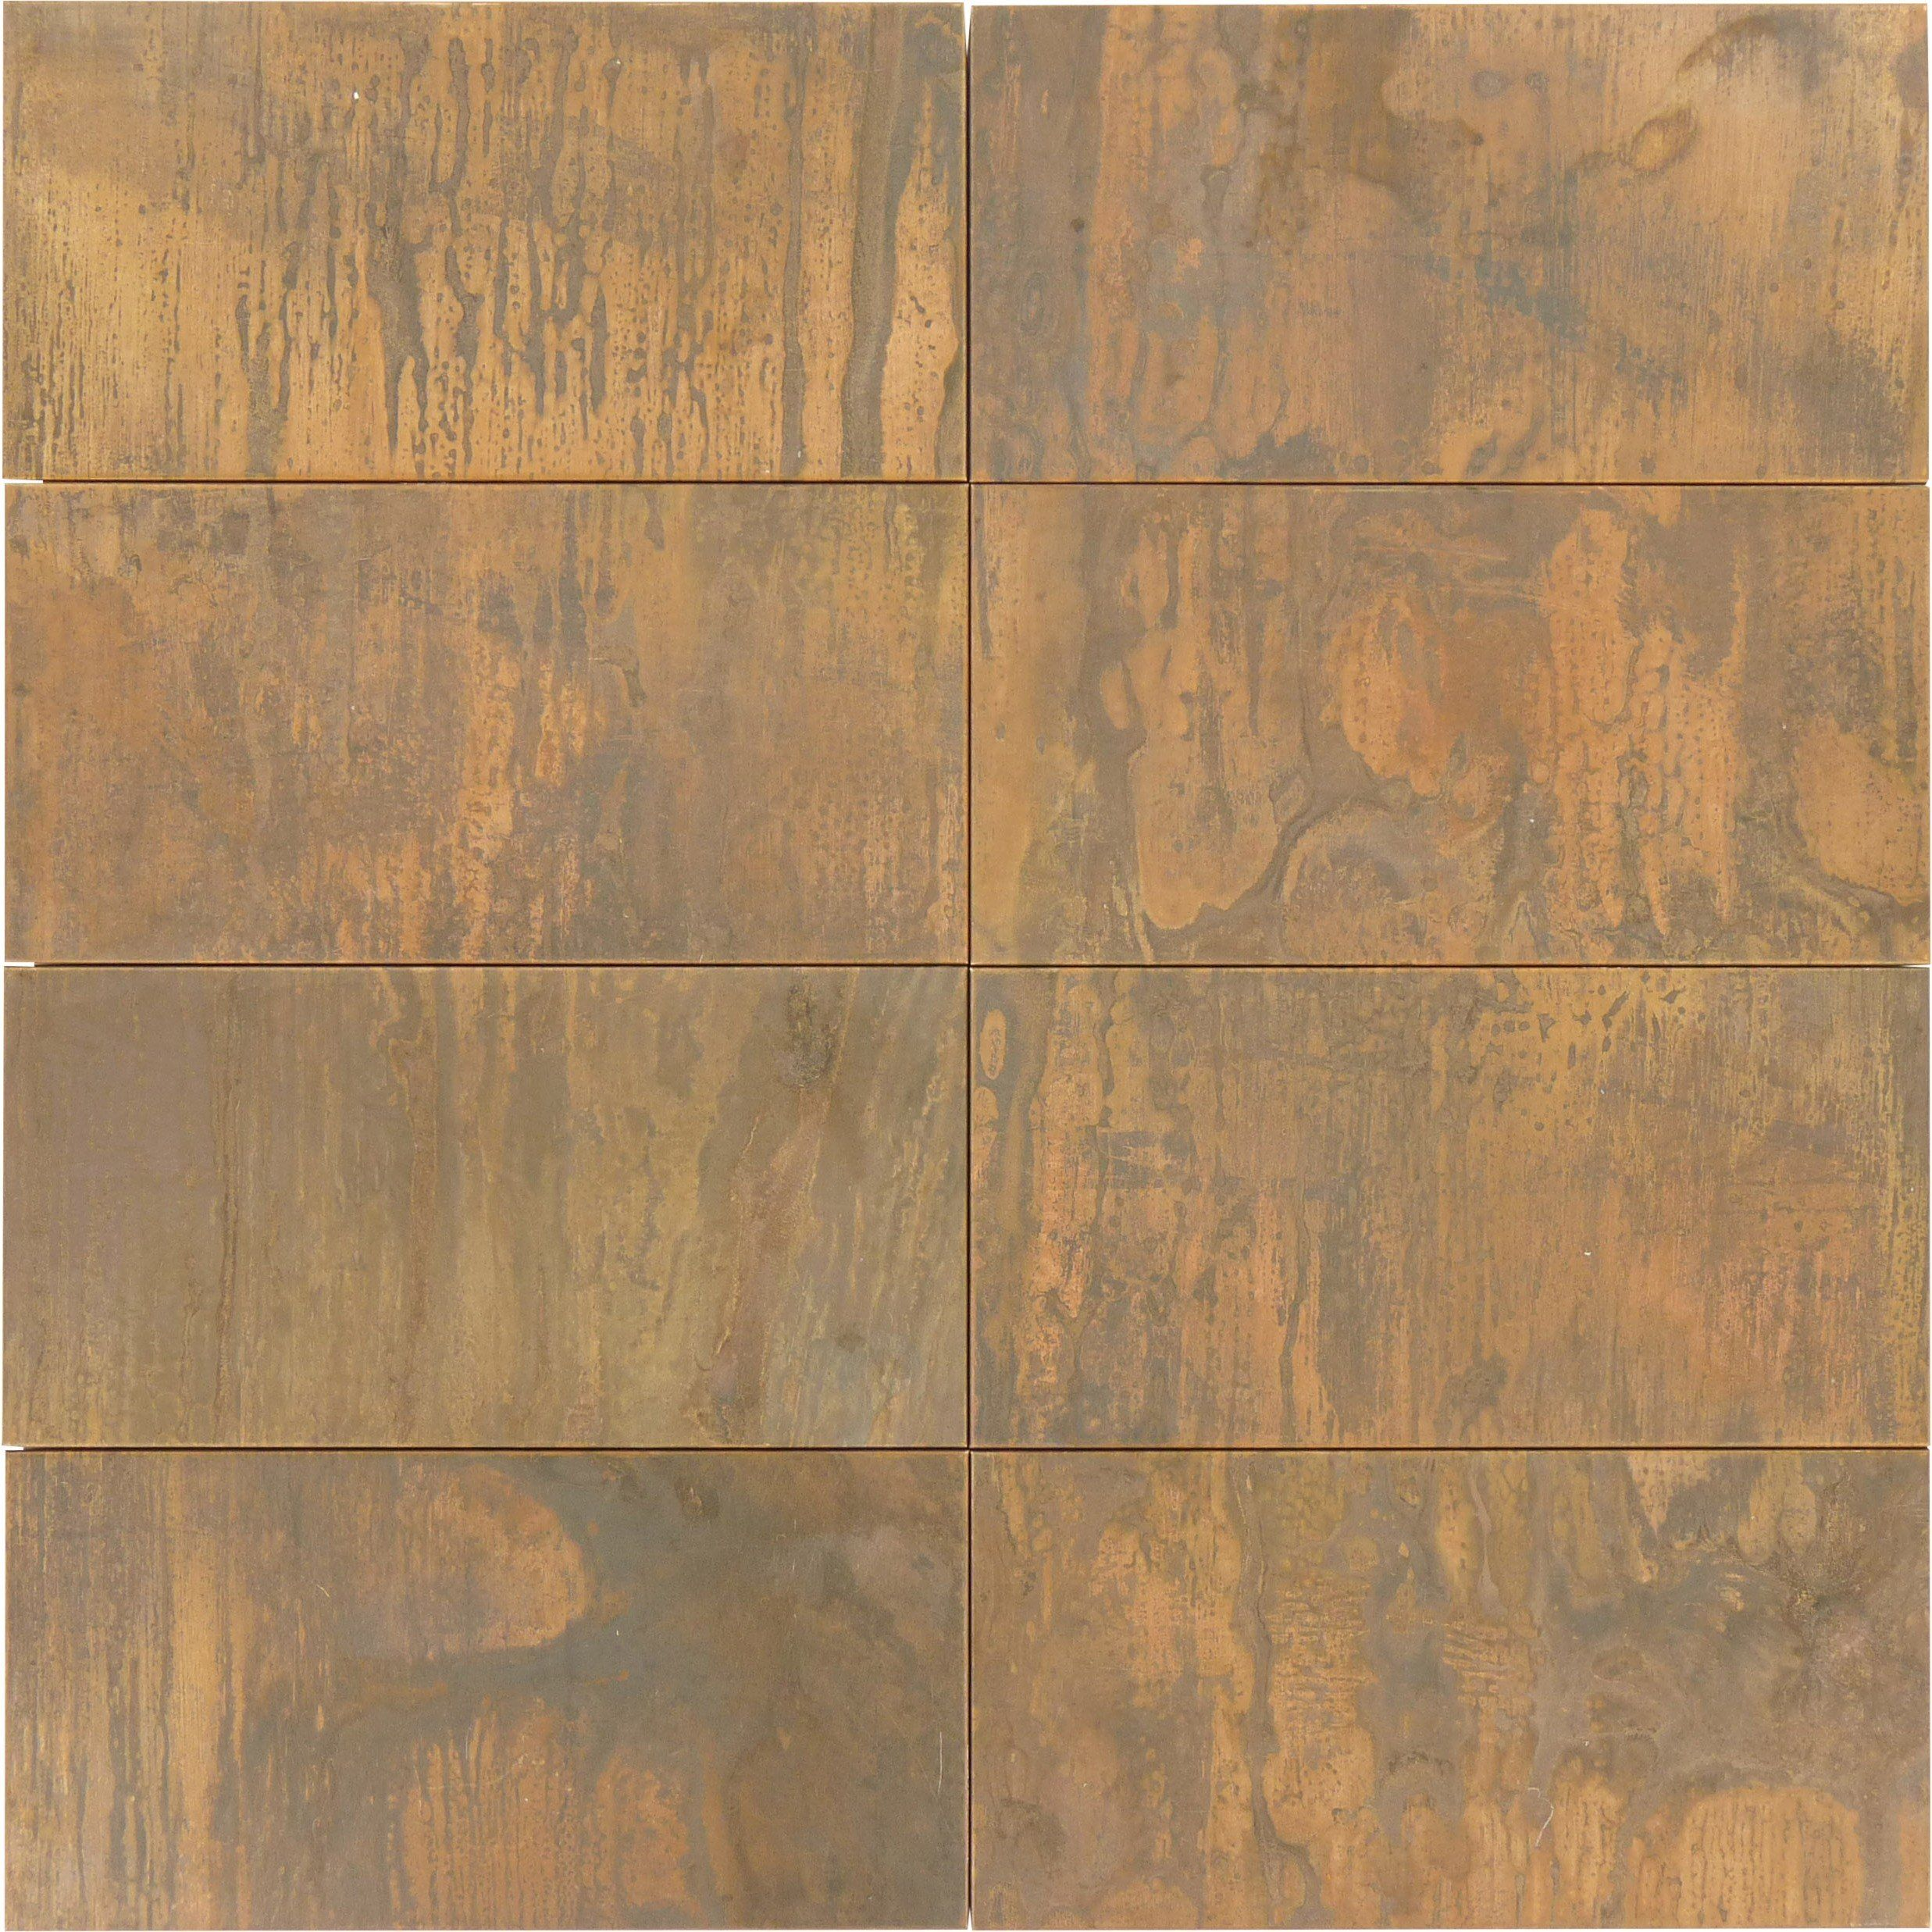 Sheet Size Approx 1 Sq Ft Tile Size 3 X 6 Tile Thickness 1 4 Grout Joints 1 8 Sheet Mount Plastic Face Copper Mosaic Tile Copper Mosaic Copper Tiles